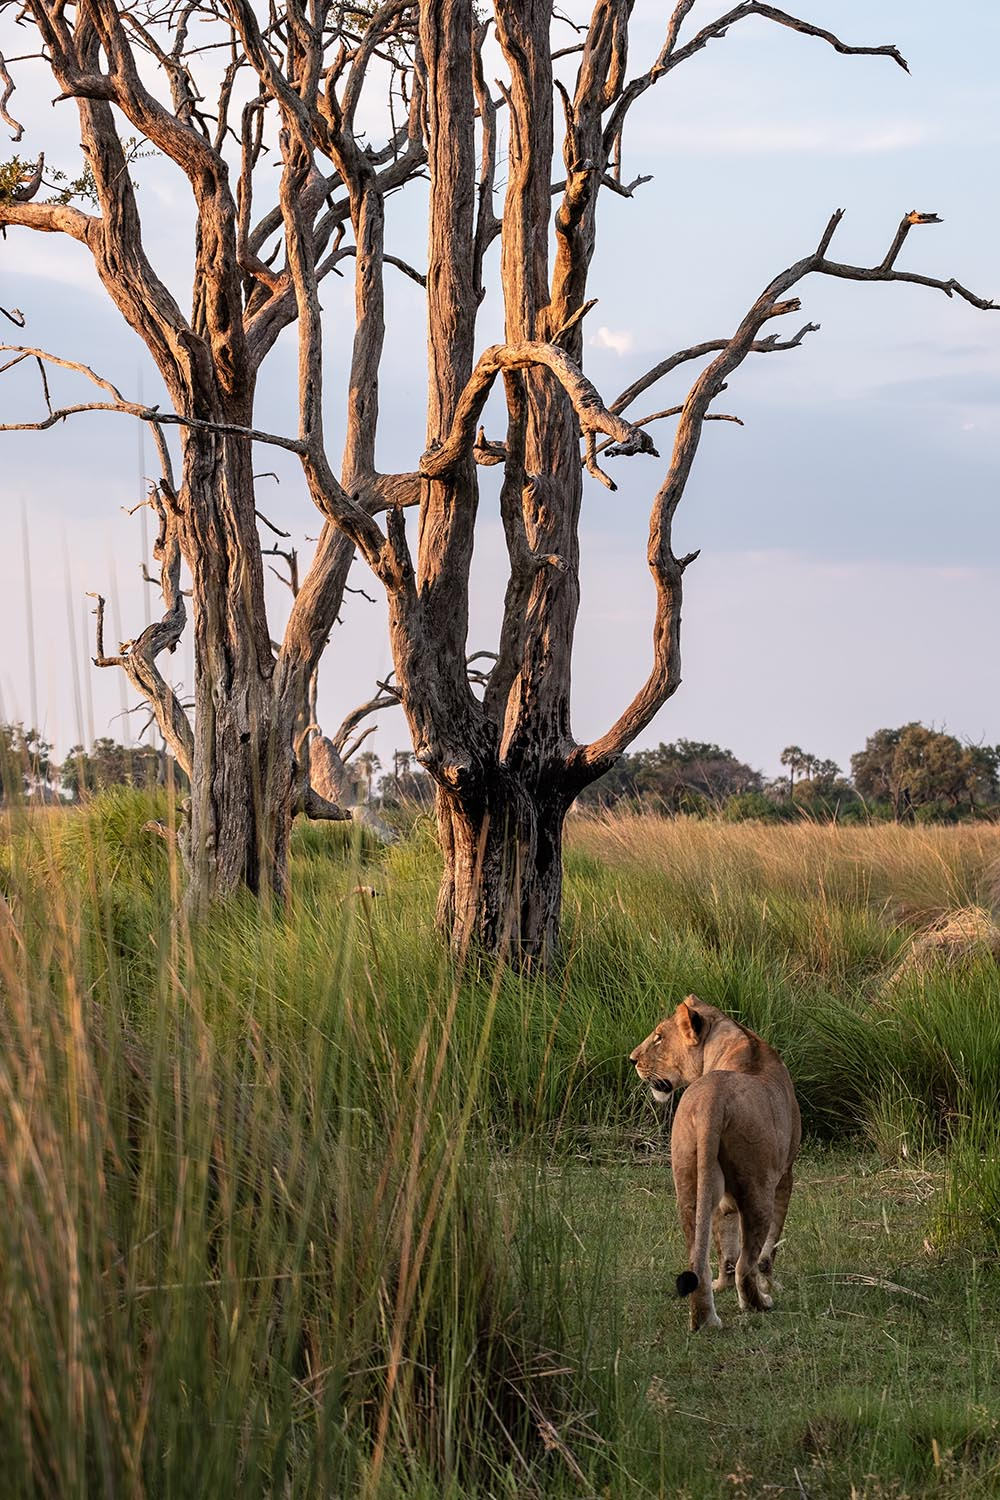 Lioness walking in nature